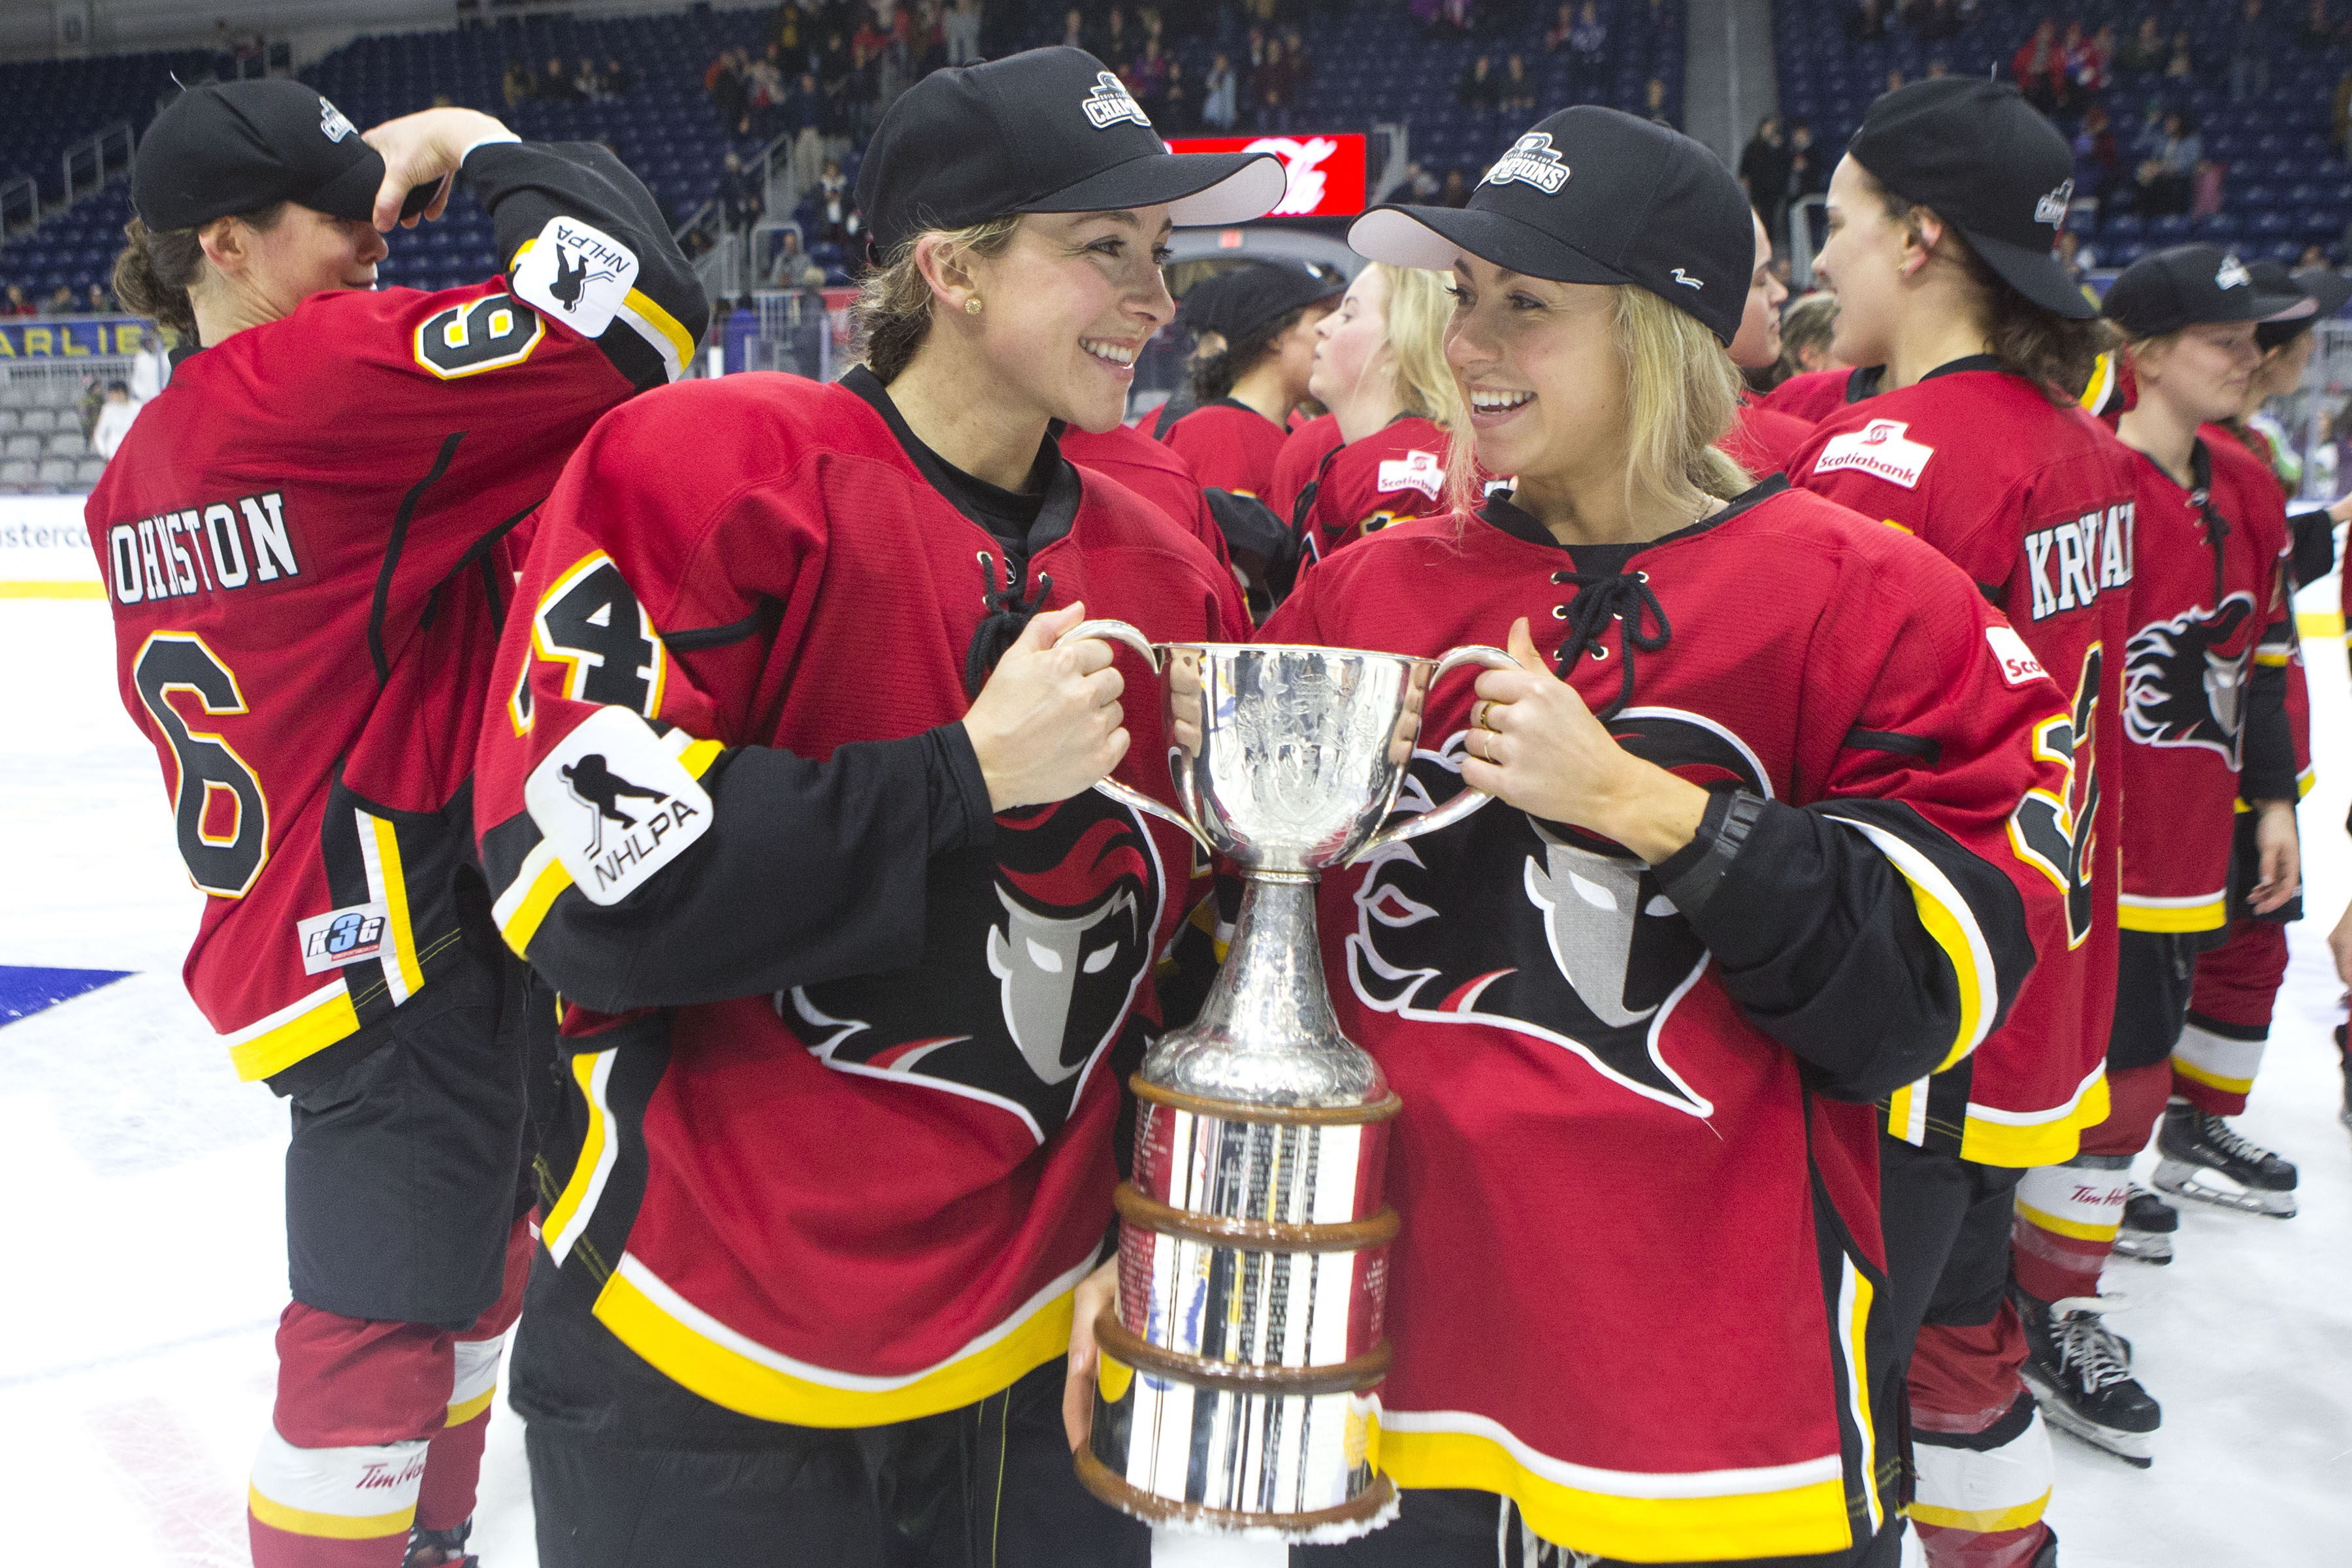 Calgary Inferno's Zoe Hickel (L) and Tori Hickel celebrate winning the 2019 Canadian Women's Hockey League Clarkson Cup after beating Les Canadiennes de Montreal.